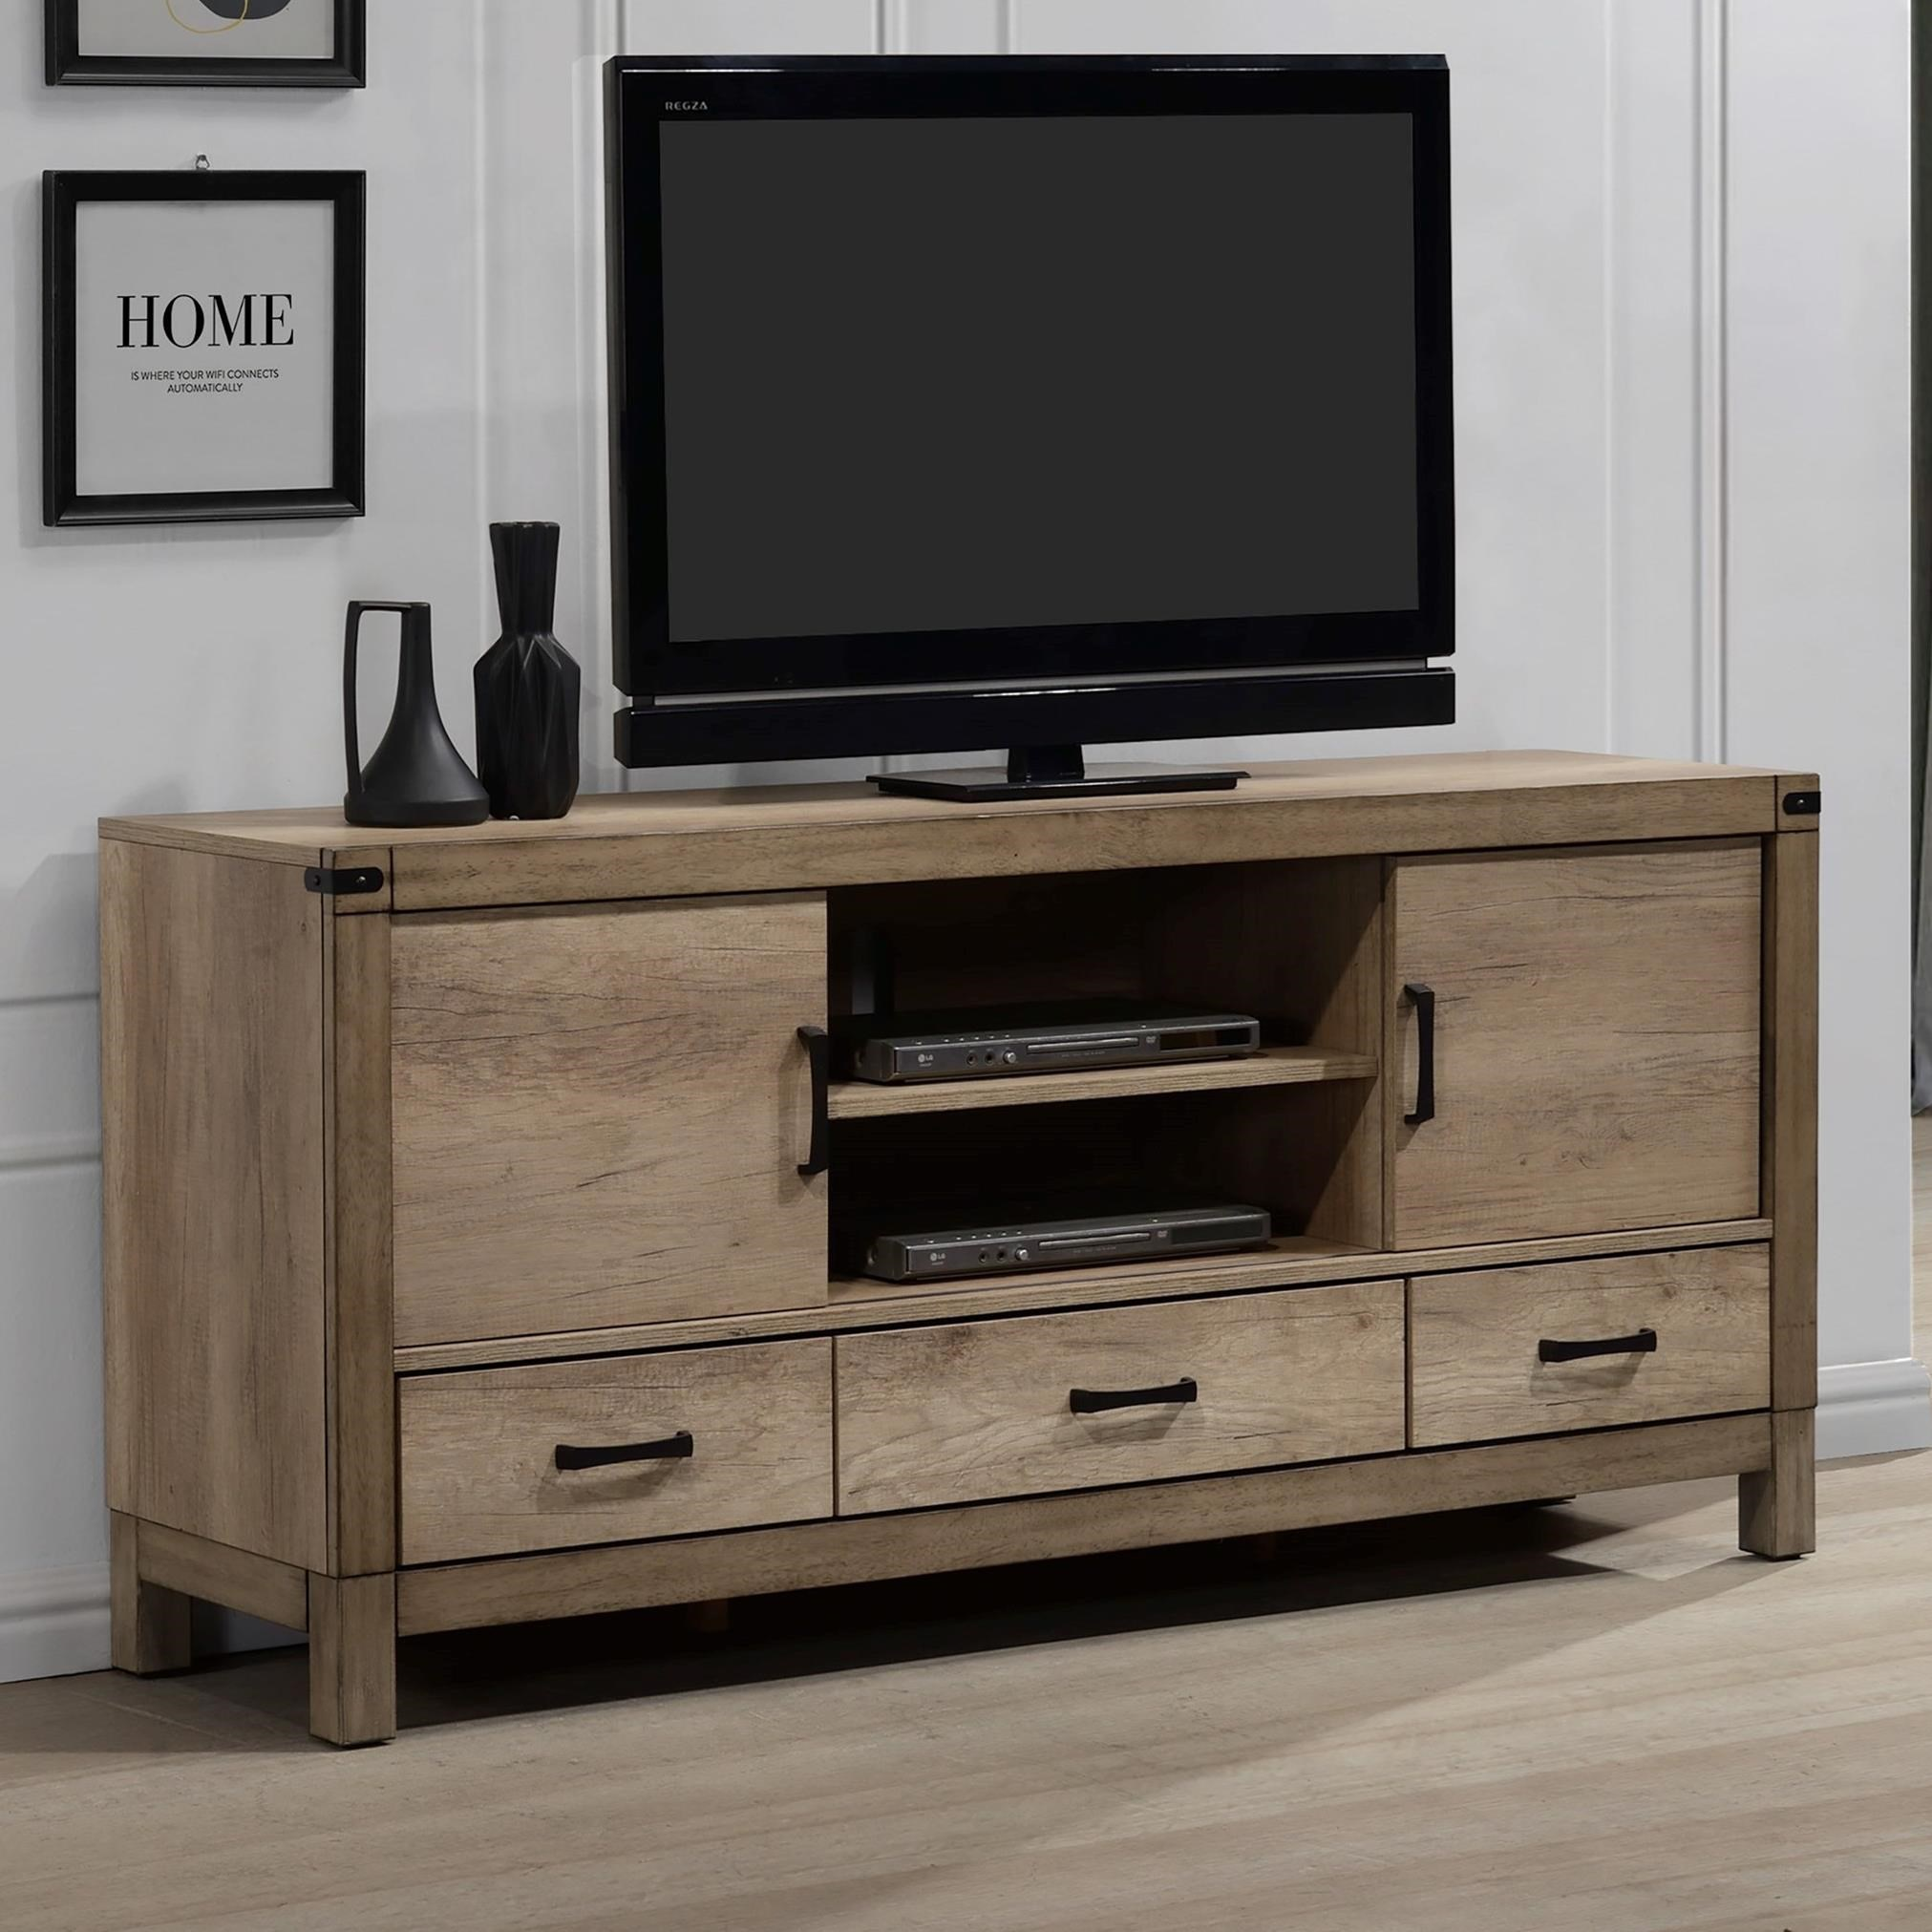 Matteo TV Stand by Crown Mark Furniture at Del Sol Furniture